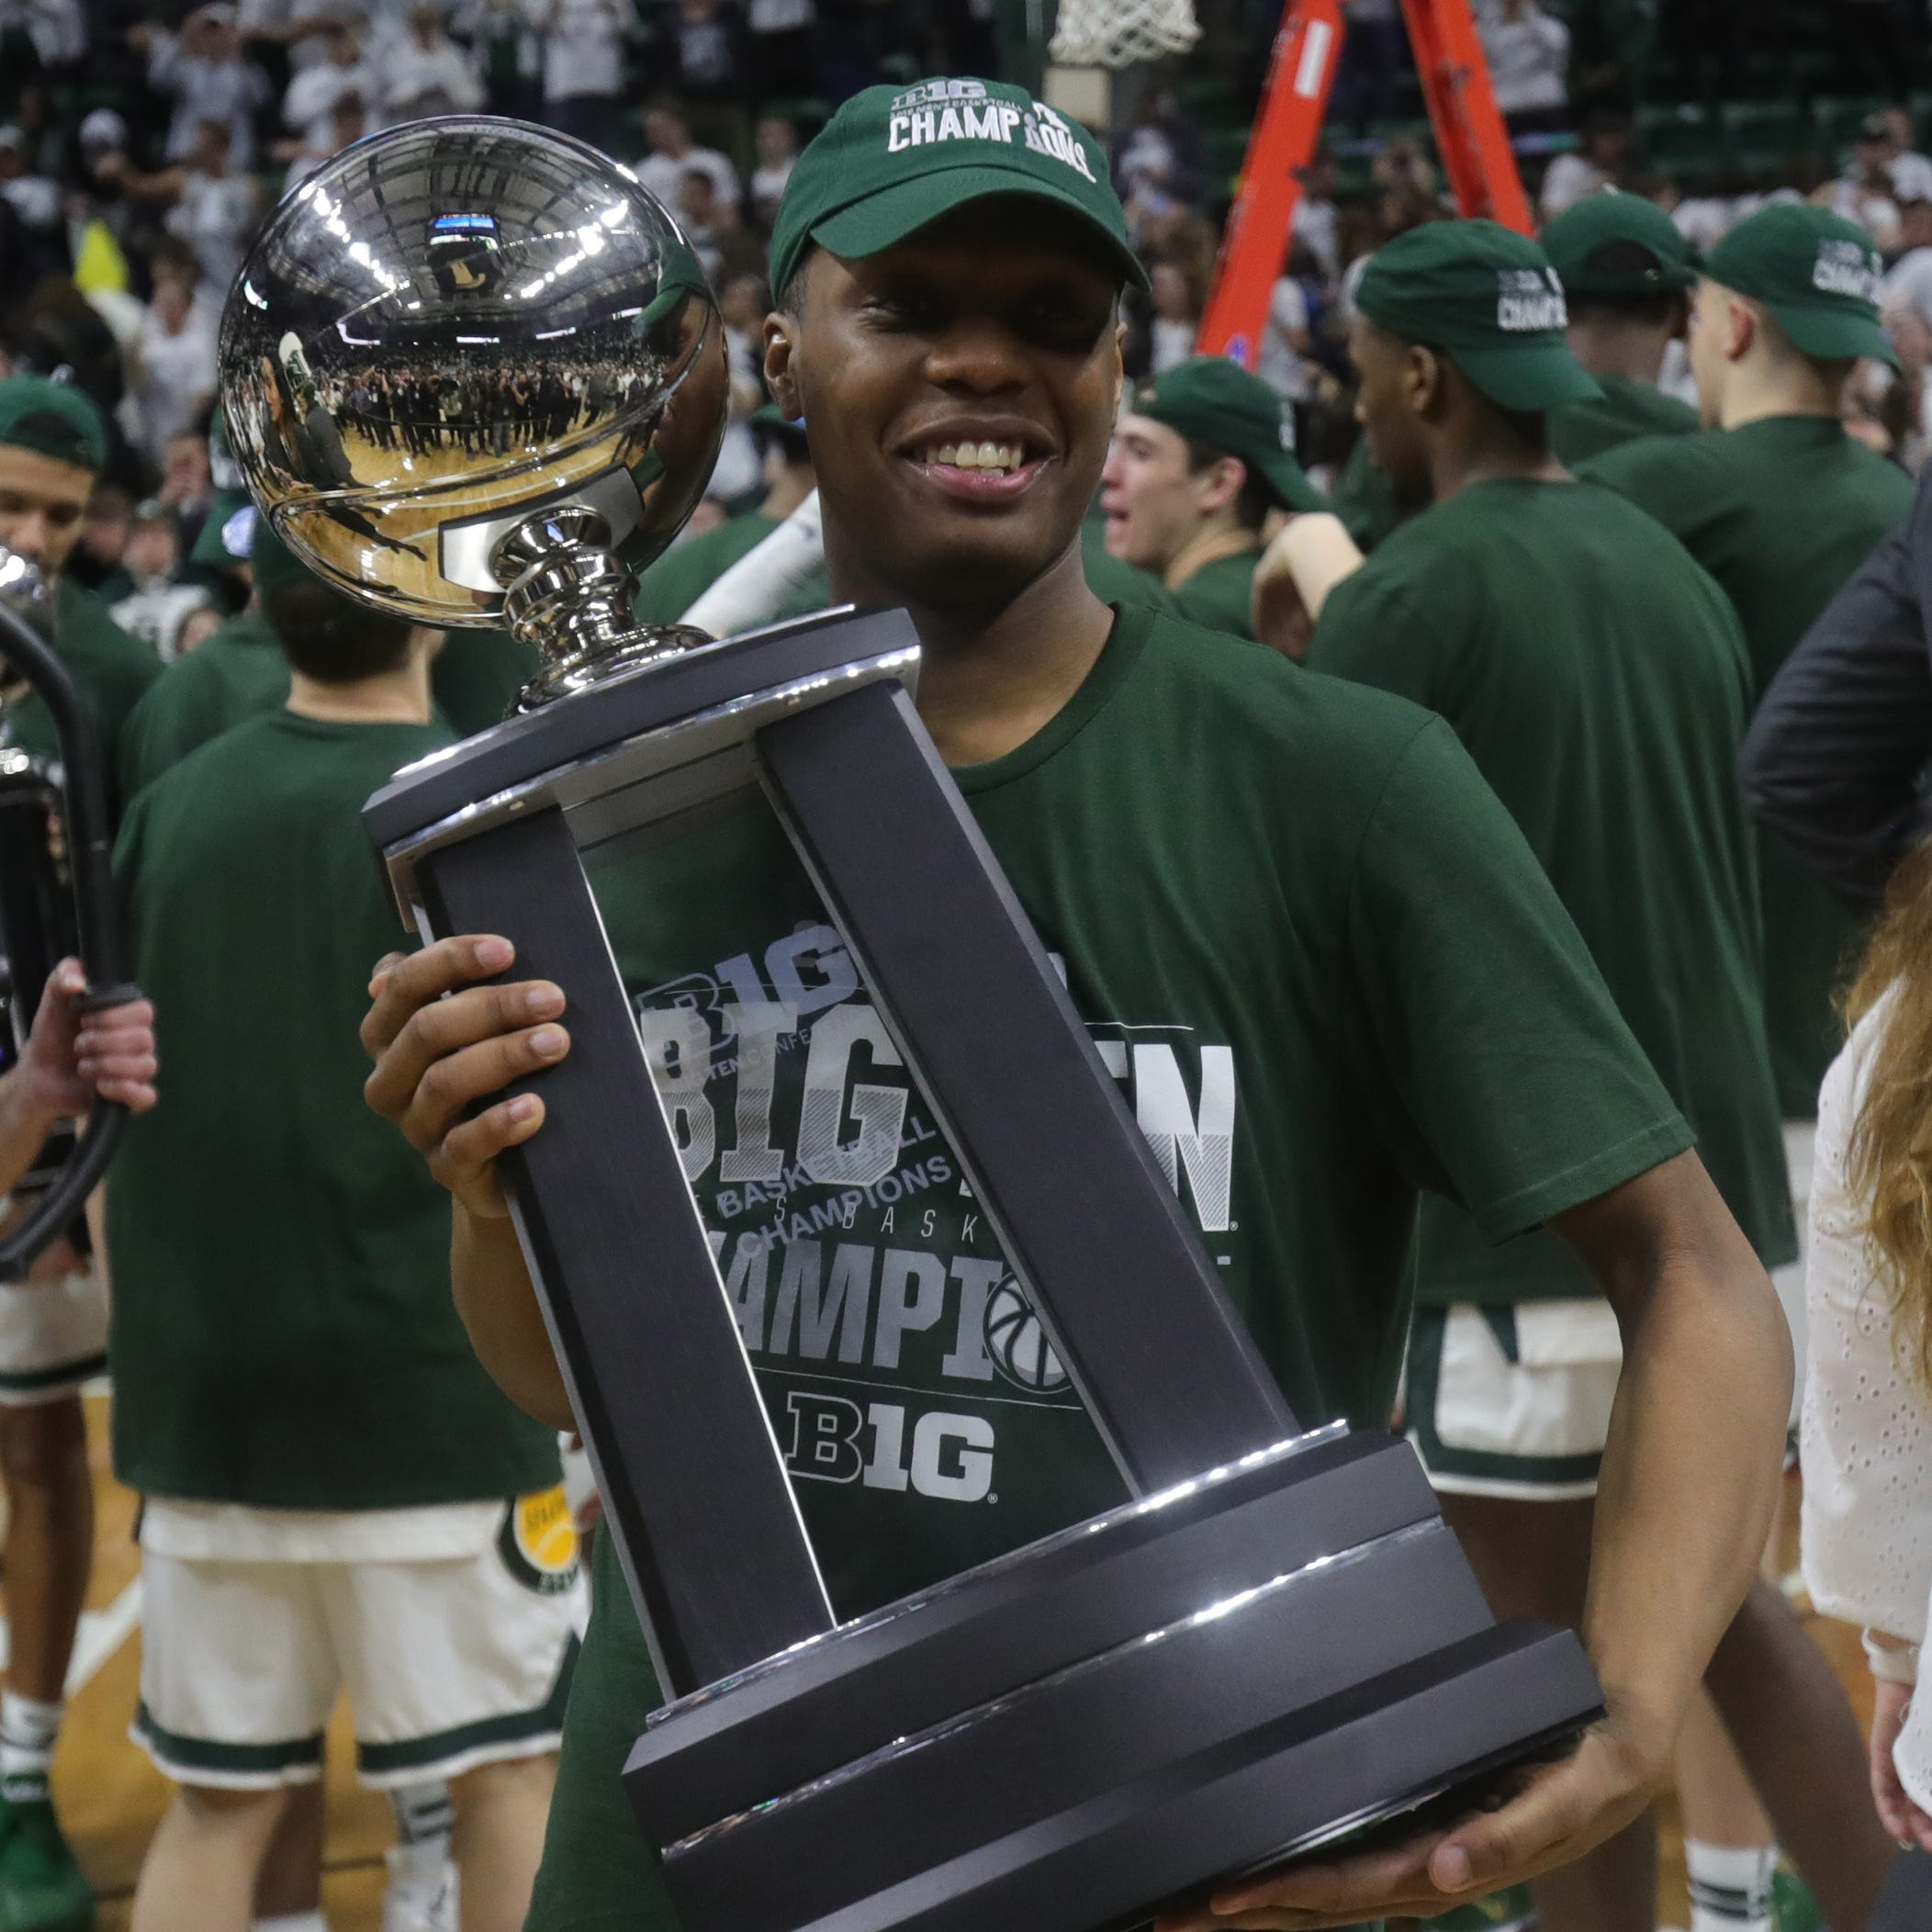 Michigan State's Cassius Winston named Big Ten player of the year